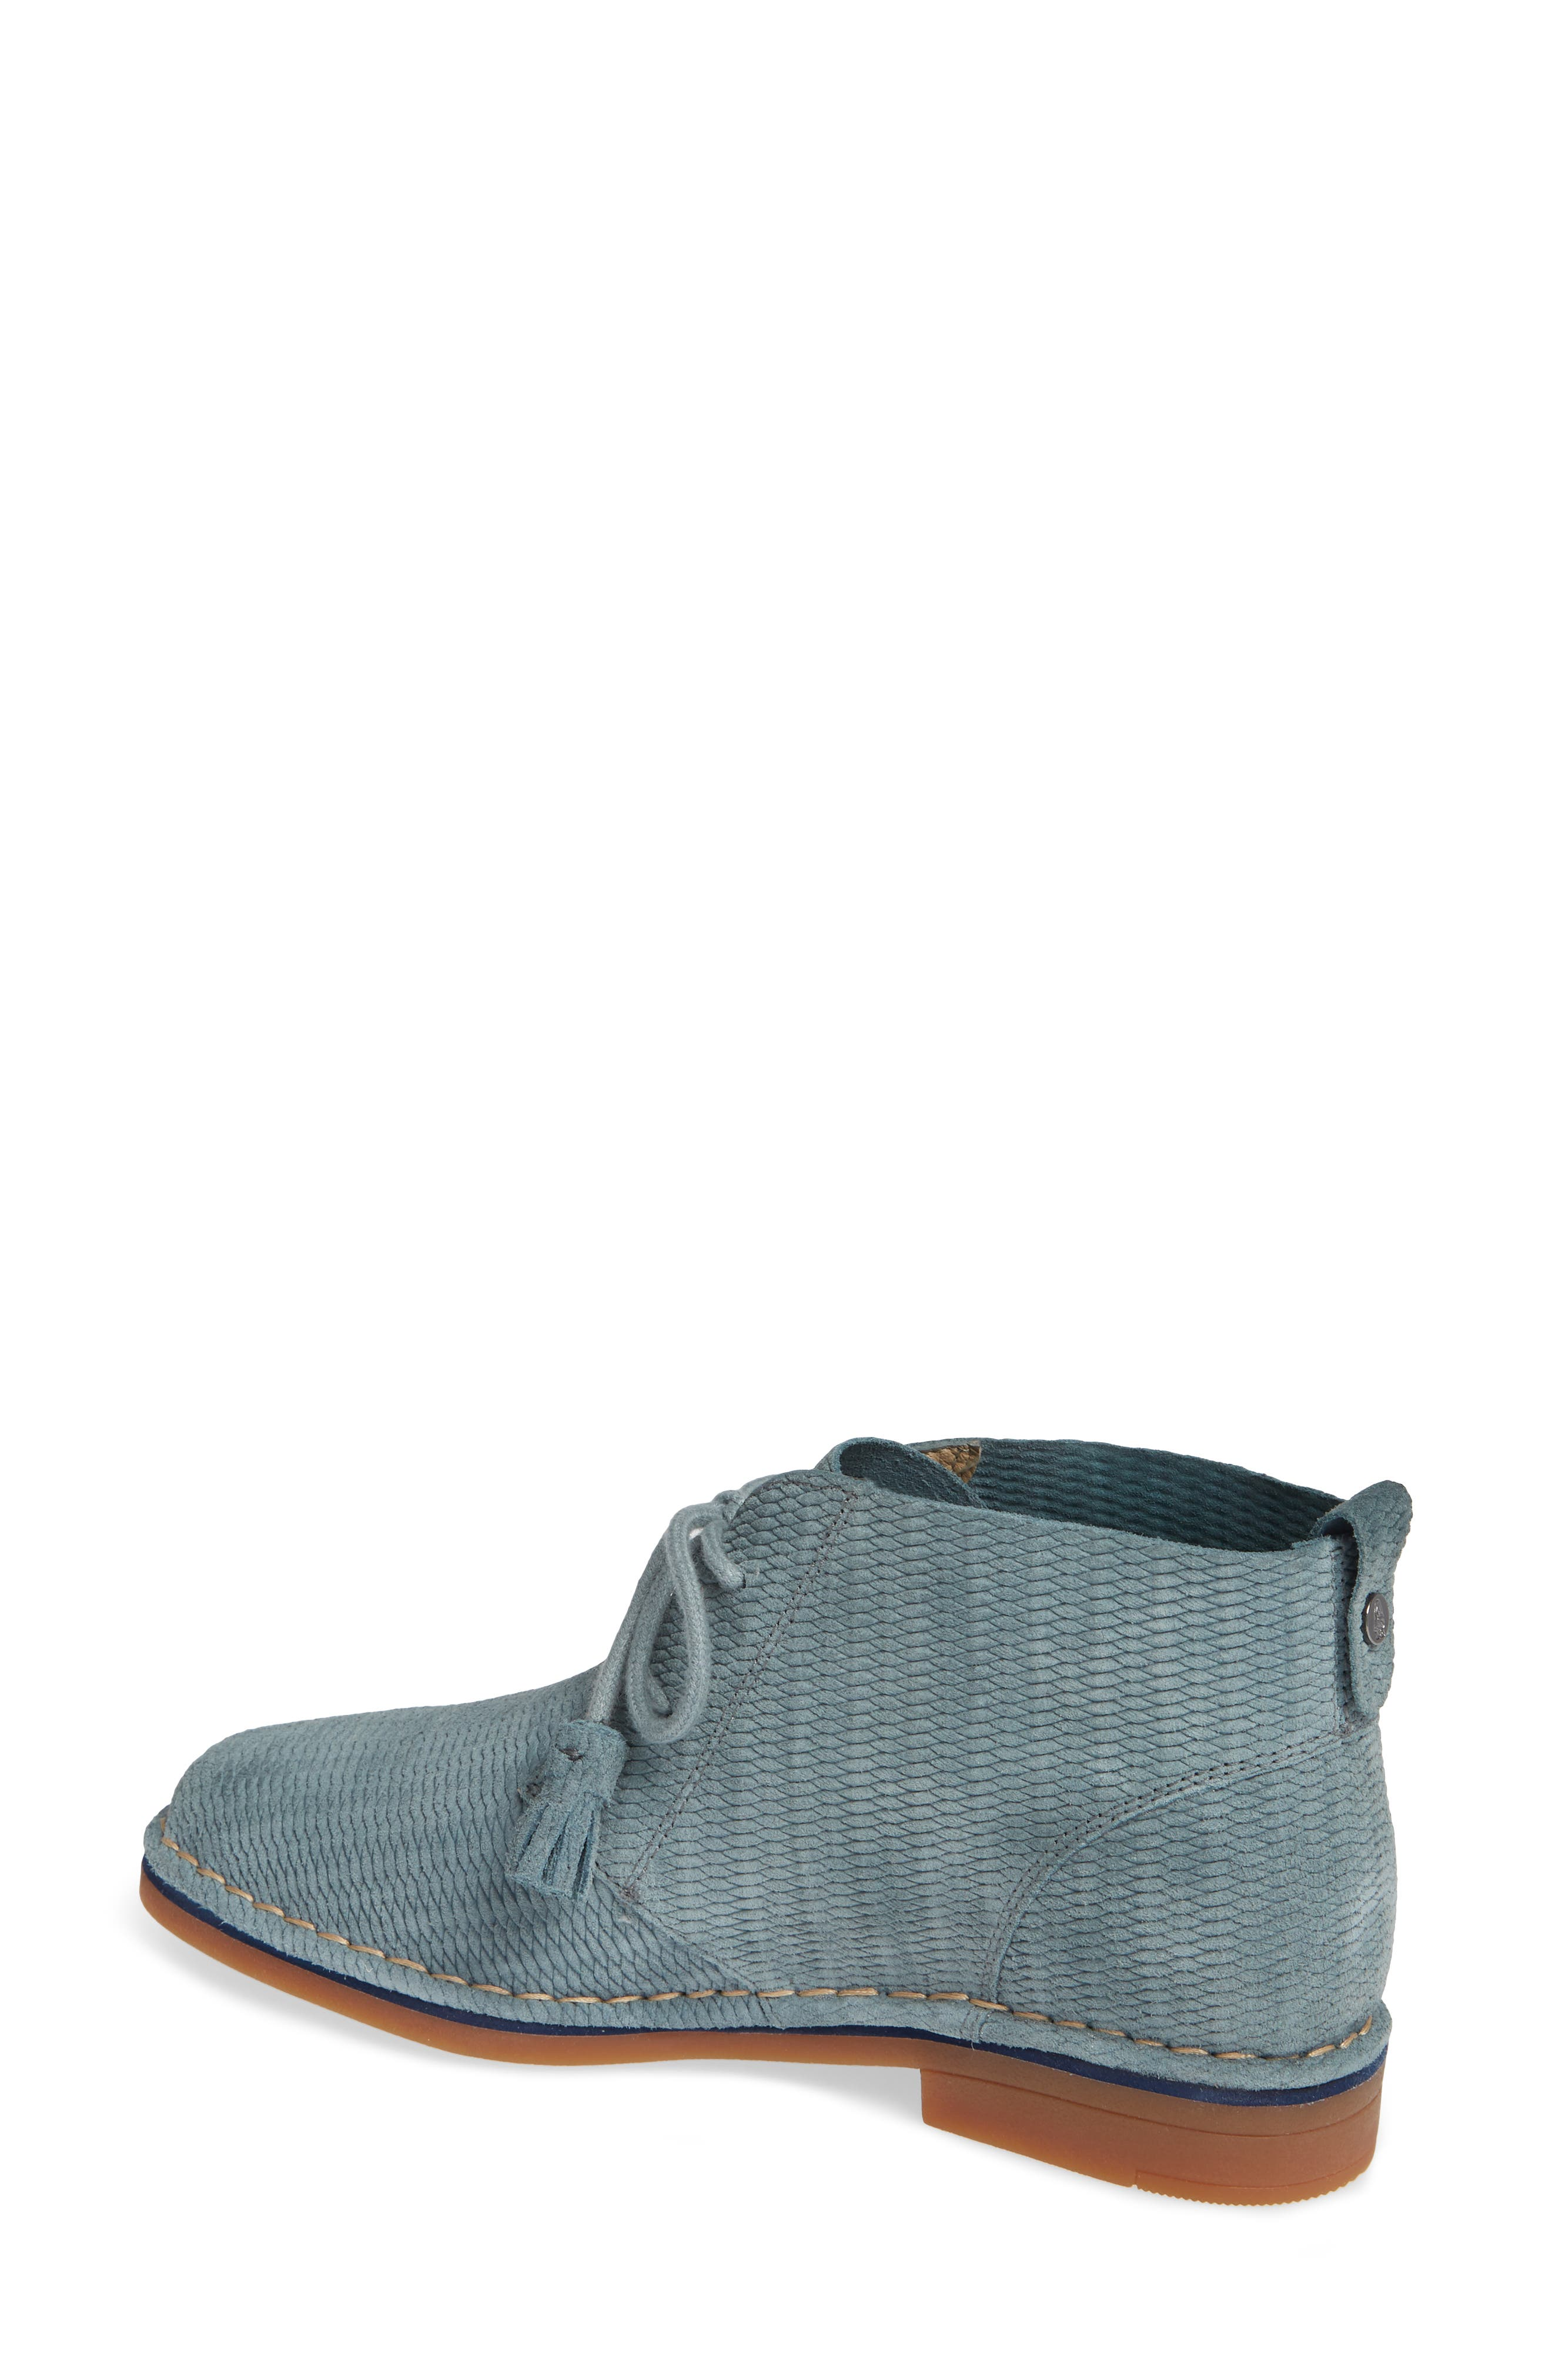 'Cyra Catelyn' Chukka Boot,                             Alternate thumbnail 2, color,                             Storm Embossed Suede